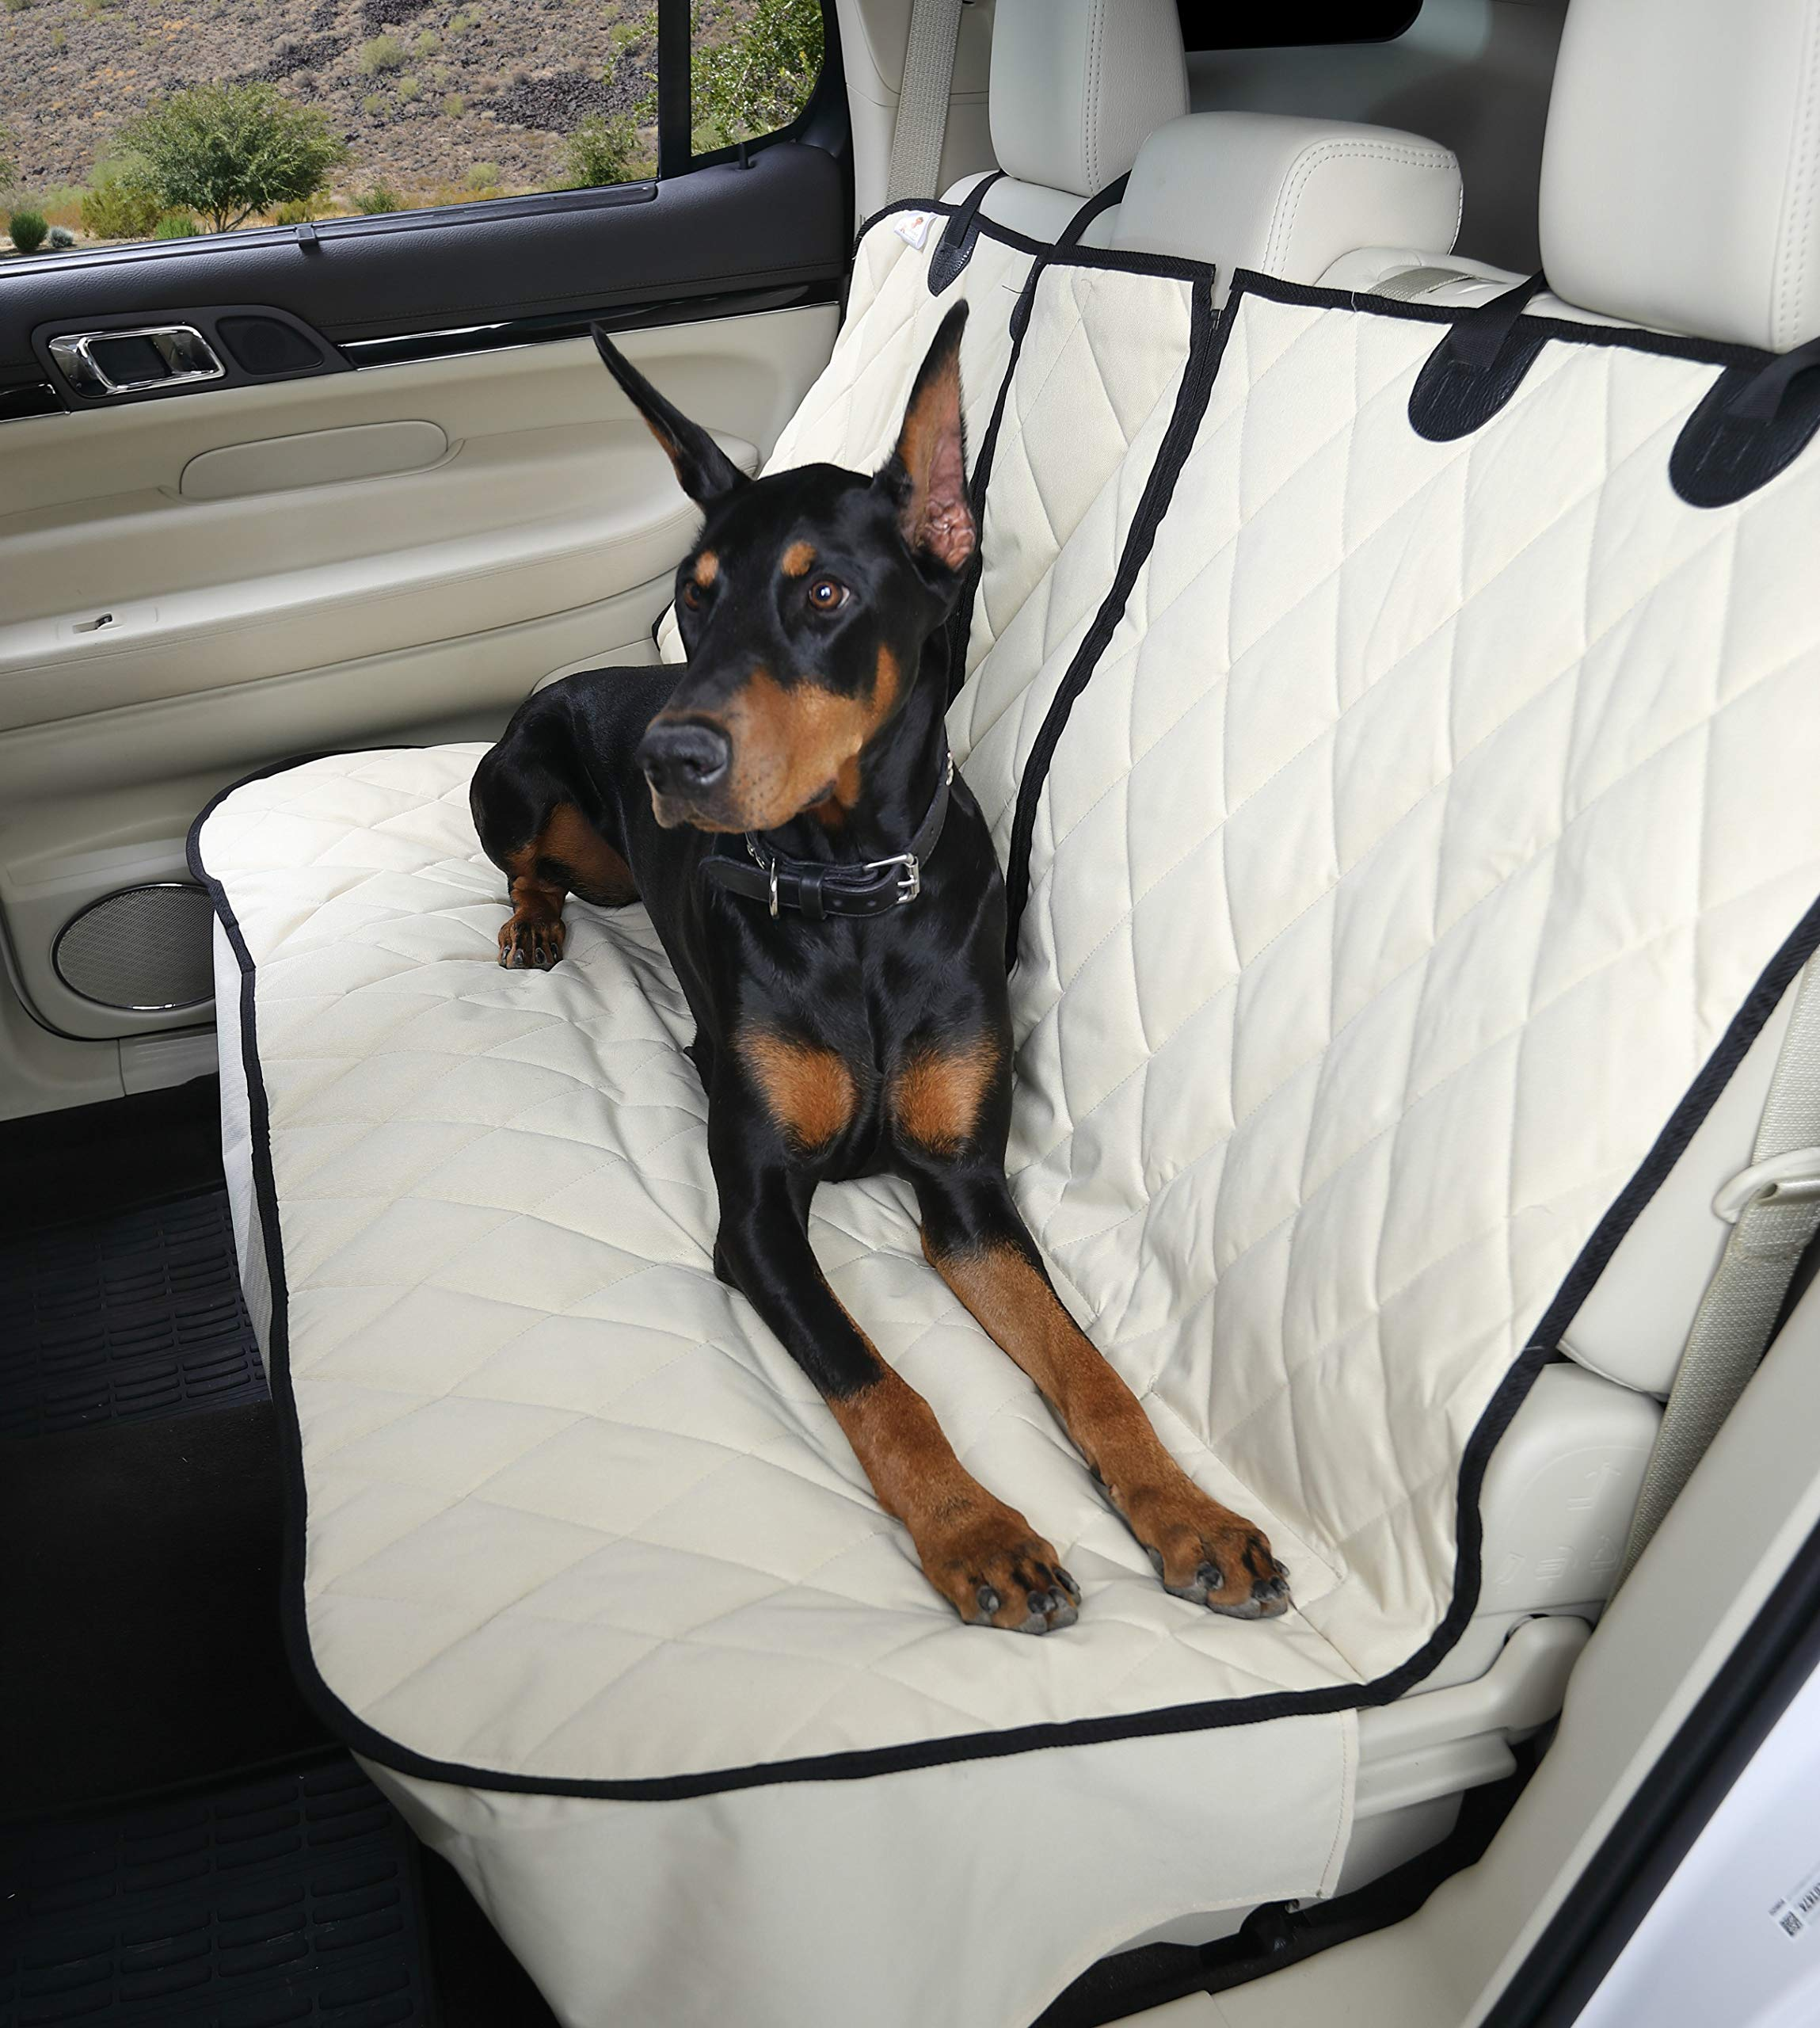 4Knines Dog Seat Cover Without Hammock for Fold Down Rear Bench SEAT 60/40 Split and Middle seat Belt Capable - Tan Extra Large - for Full Size Trucks and Large SUVs - USA Based Company